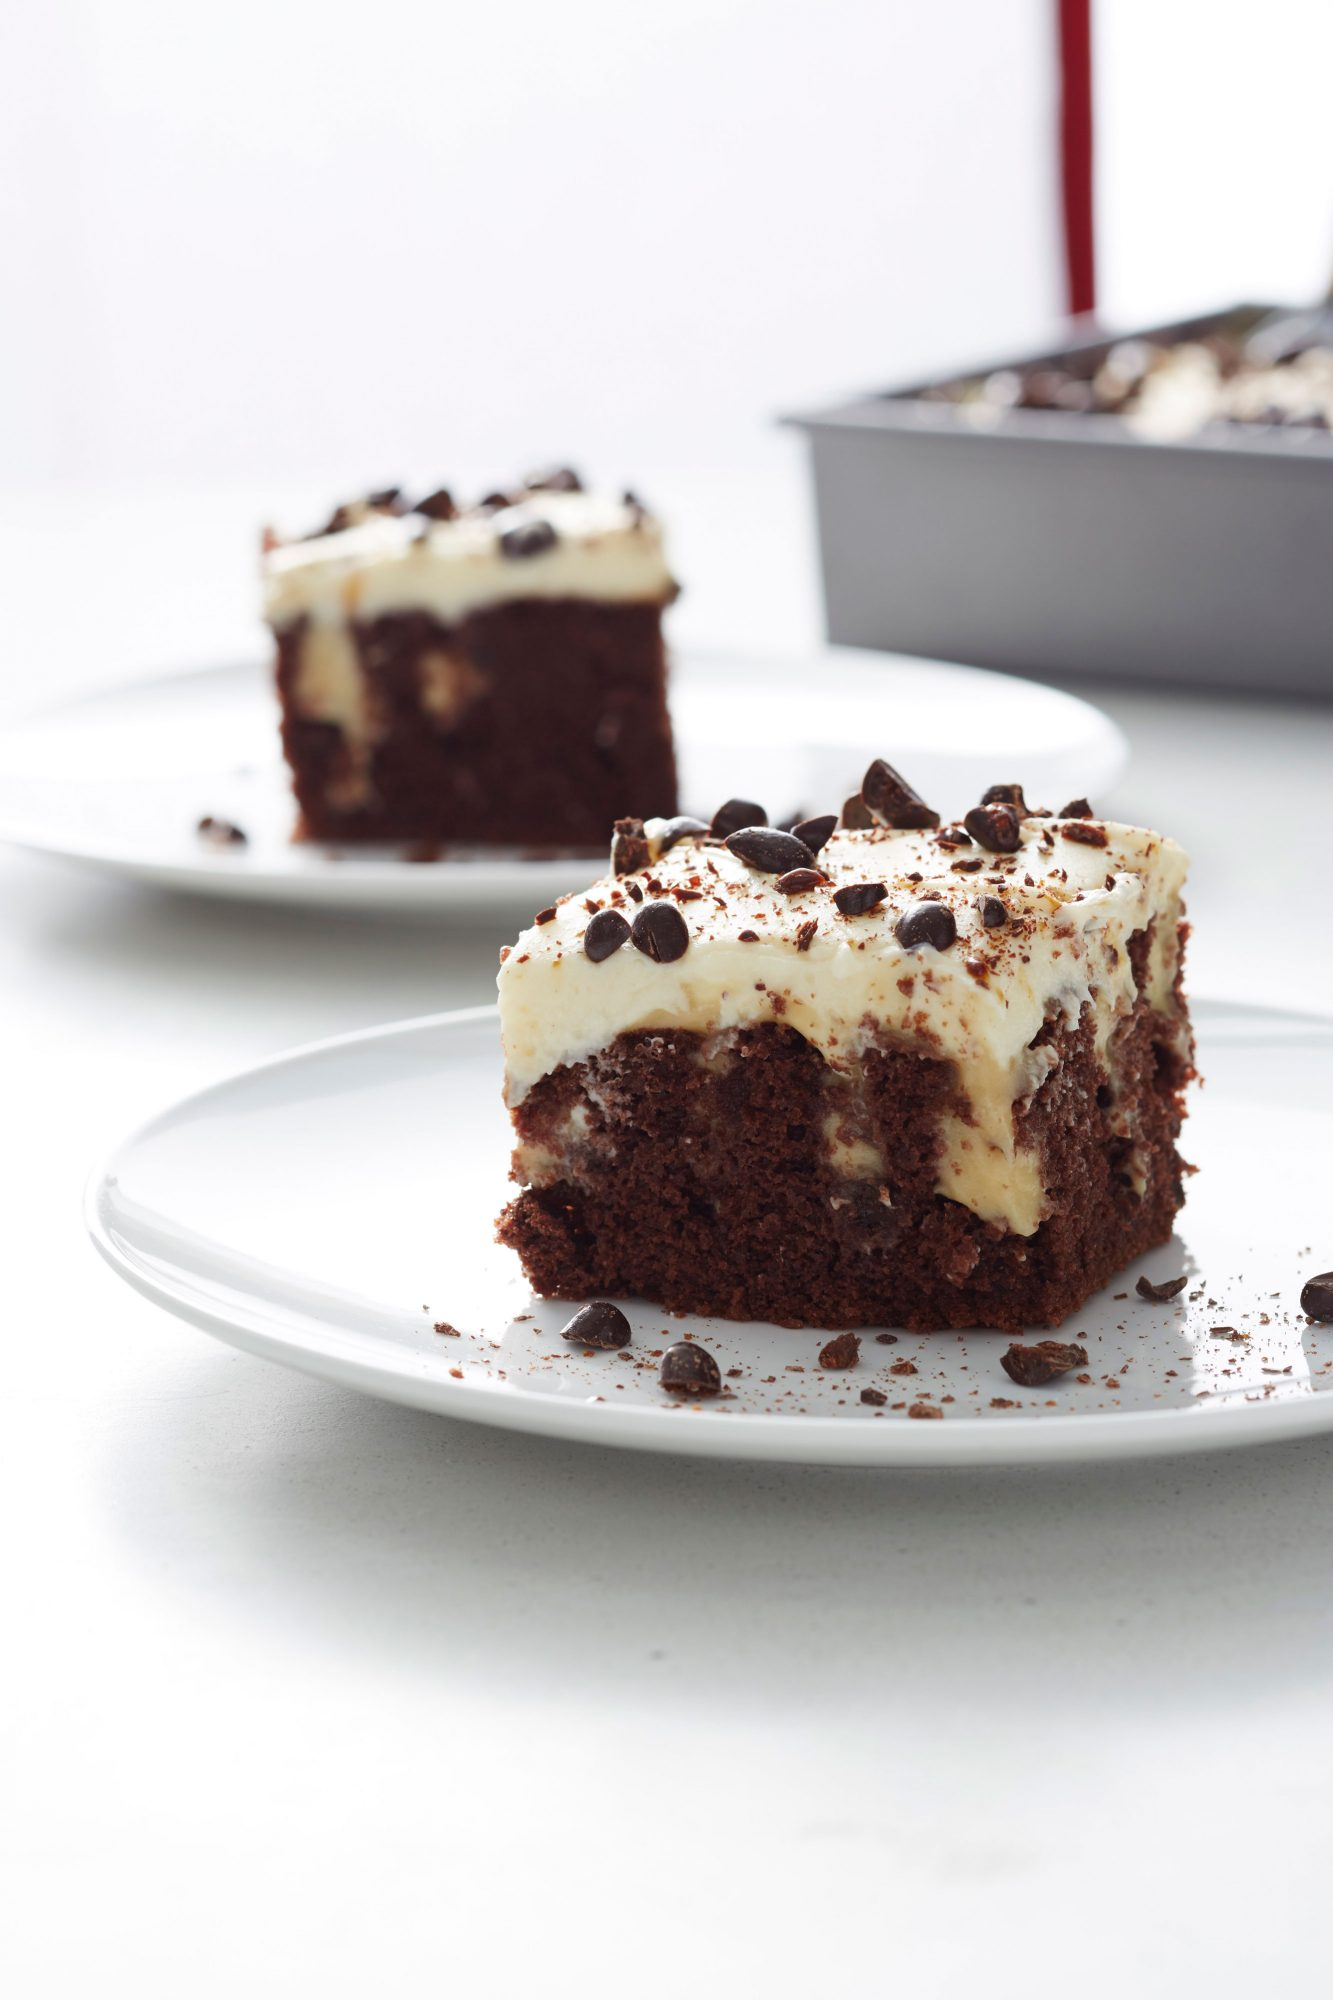 Pictures of easy cakes